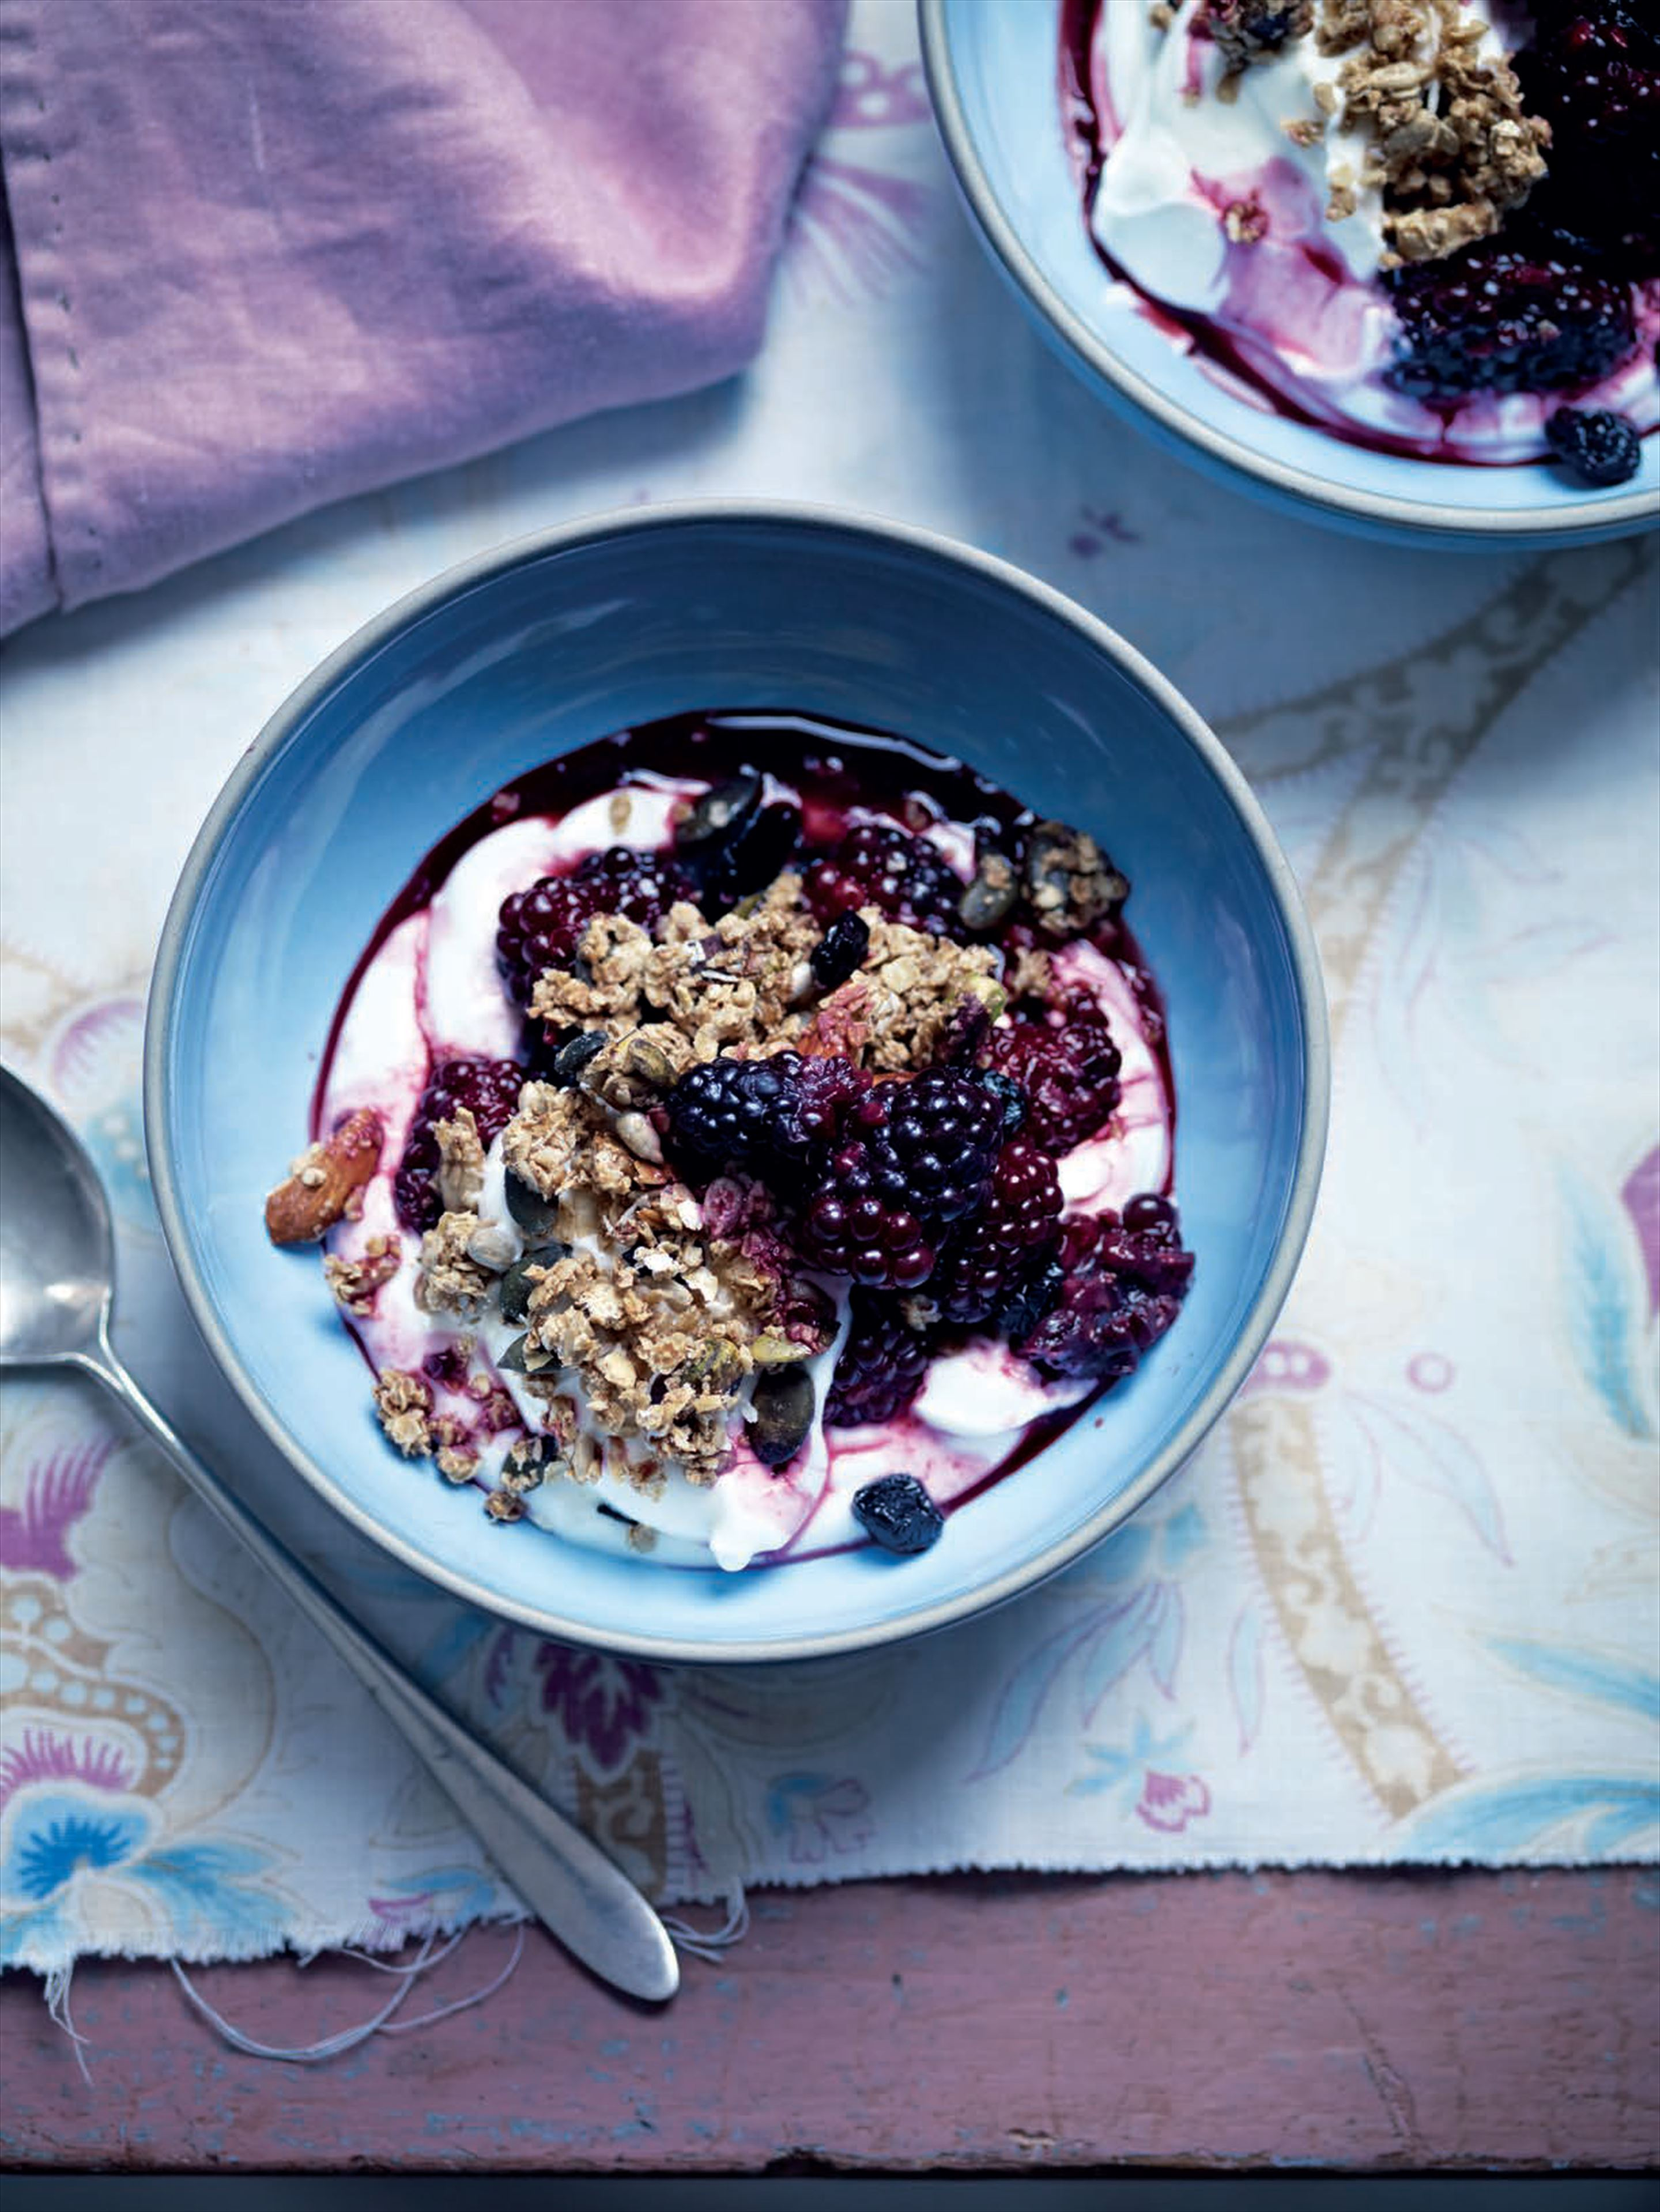 Blackberry-violet compote and easy granola